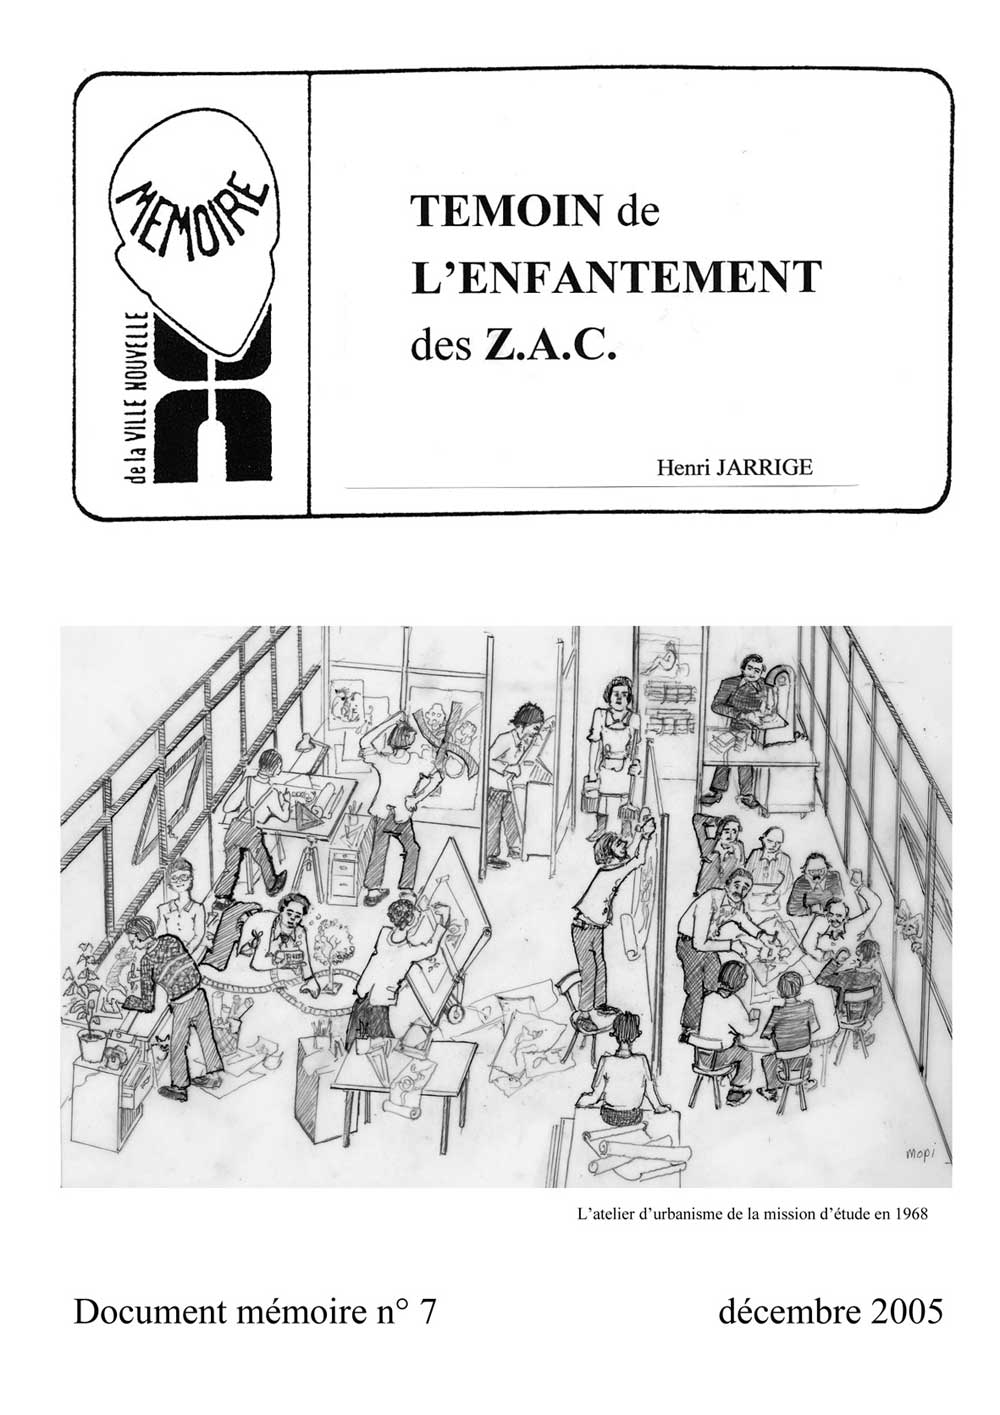 Document mémoire n°7 (2005)